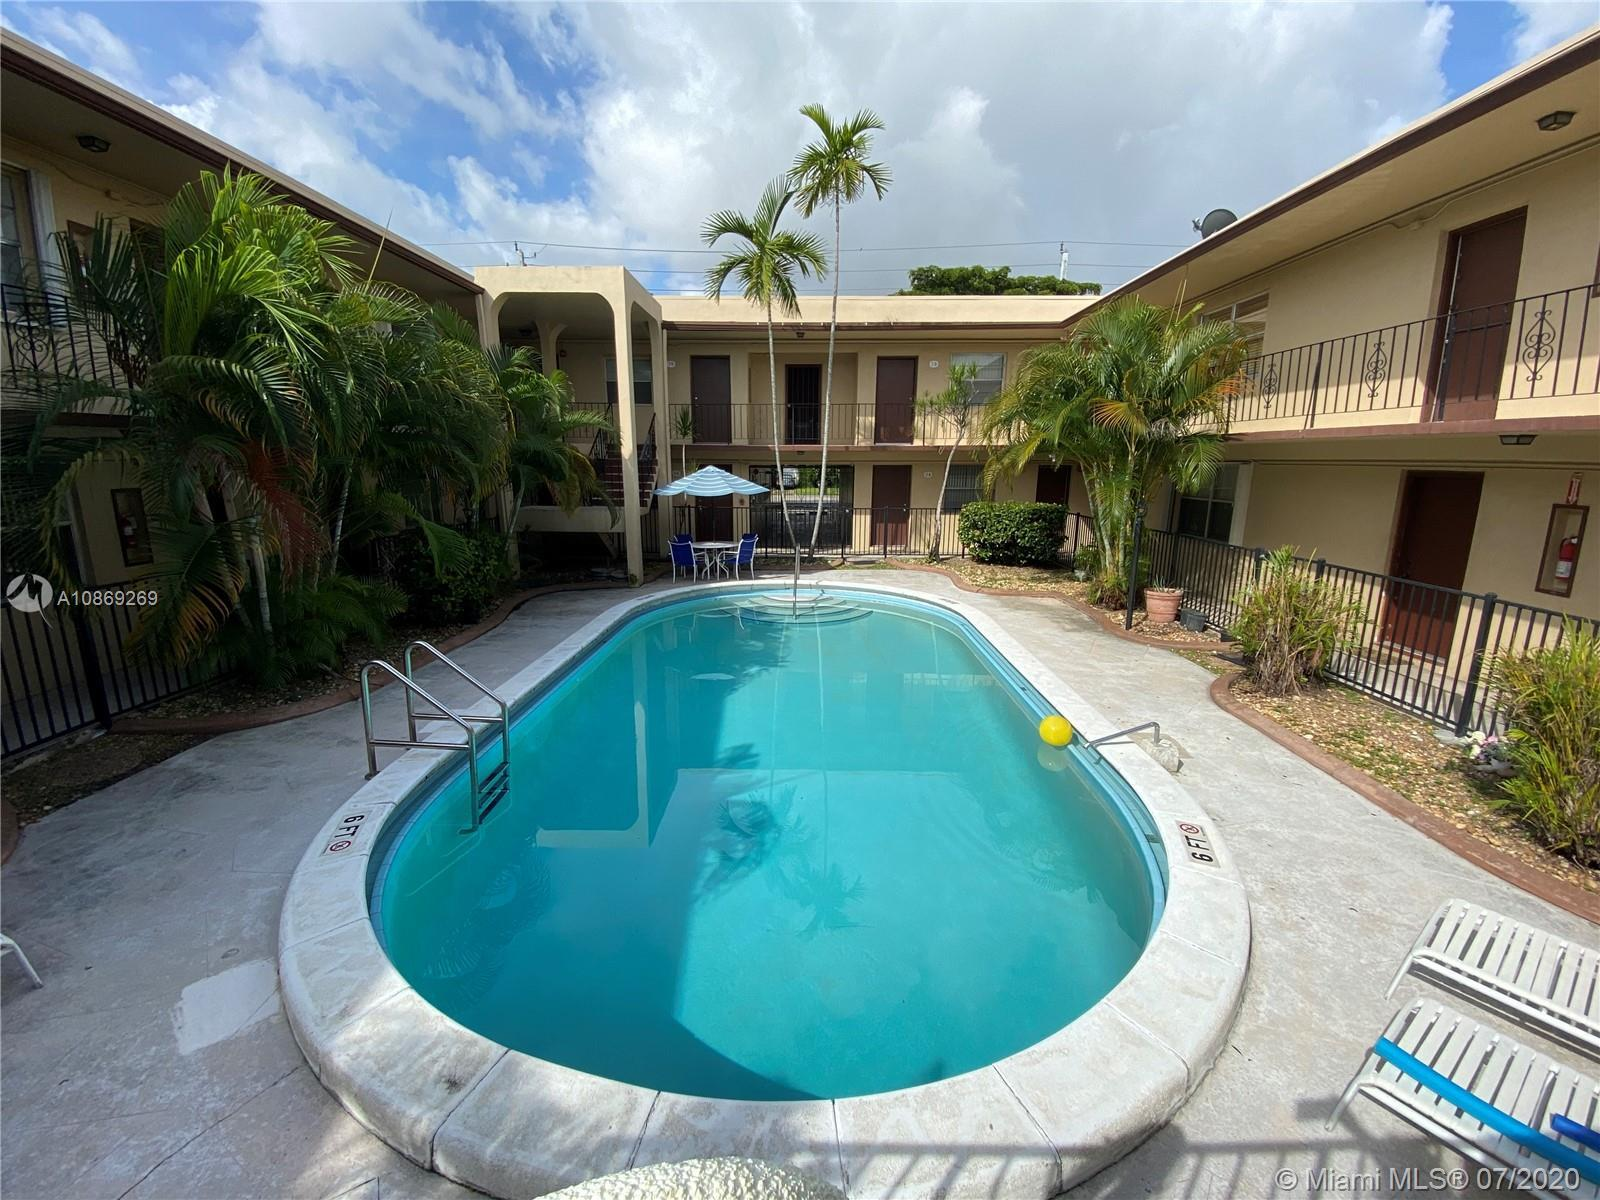 Excellent 2/2 condo for rent in Miami Springs! Unit is on the ground floor on a corner. Features tiled flooring, central A/C, 2 parking spaces, centrally located. Tenant must provide credit/background check for landlord approval. Non-smokers only and no pets please. ASSOCIATION DOES NOT ALLOW ANY PETS.